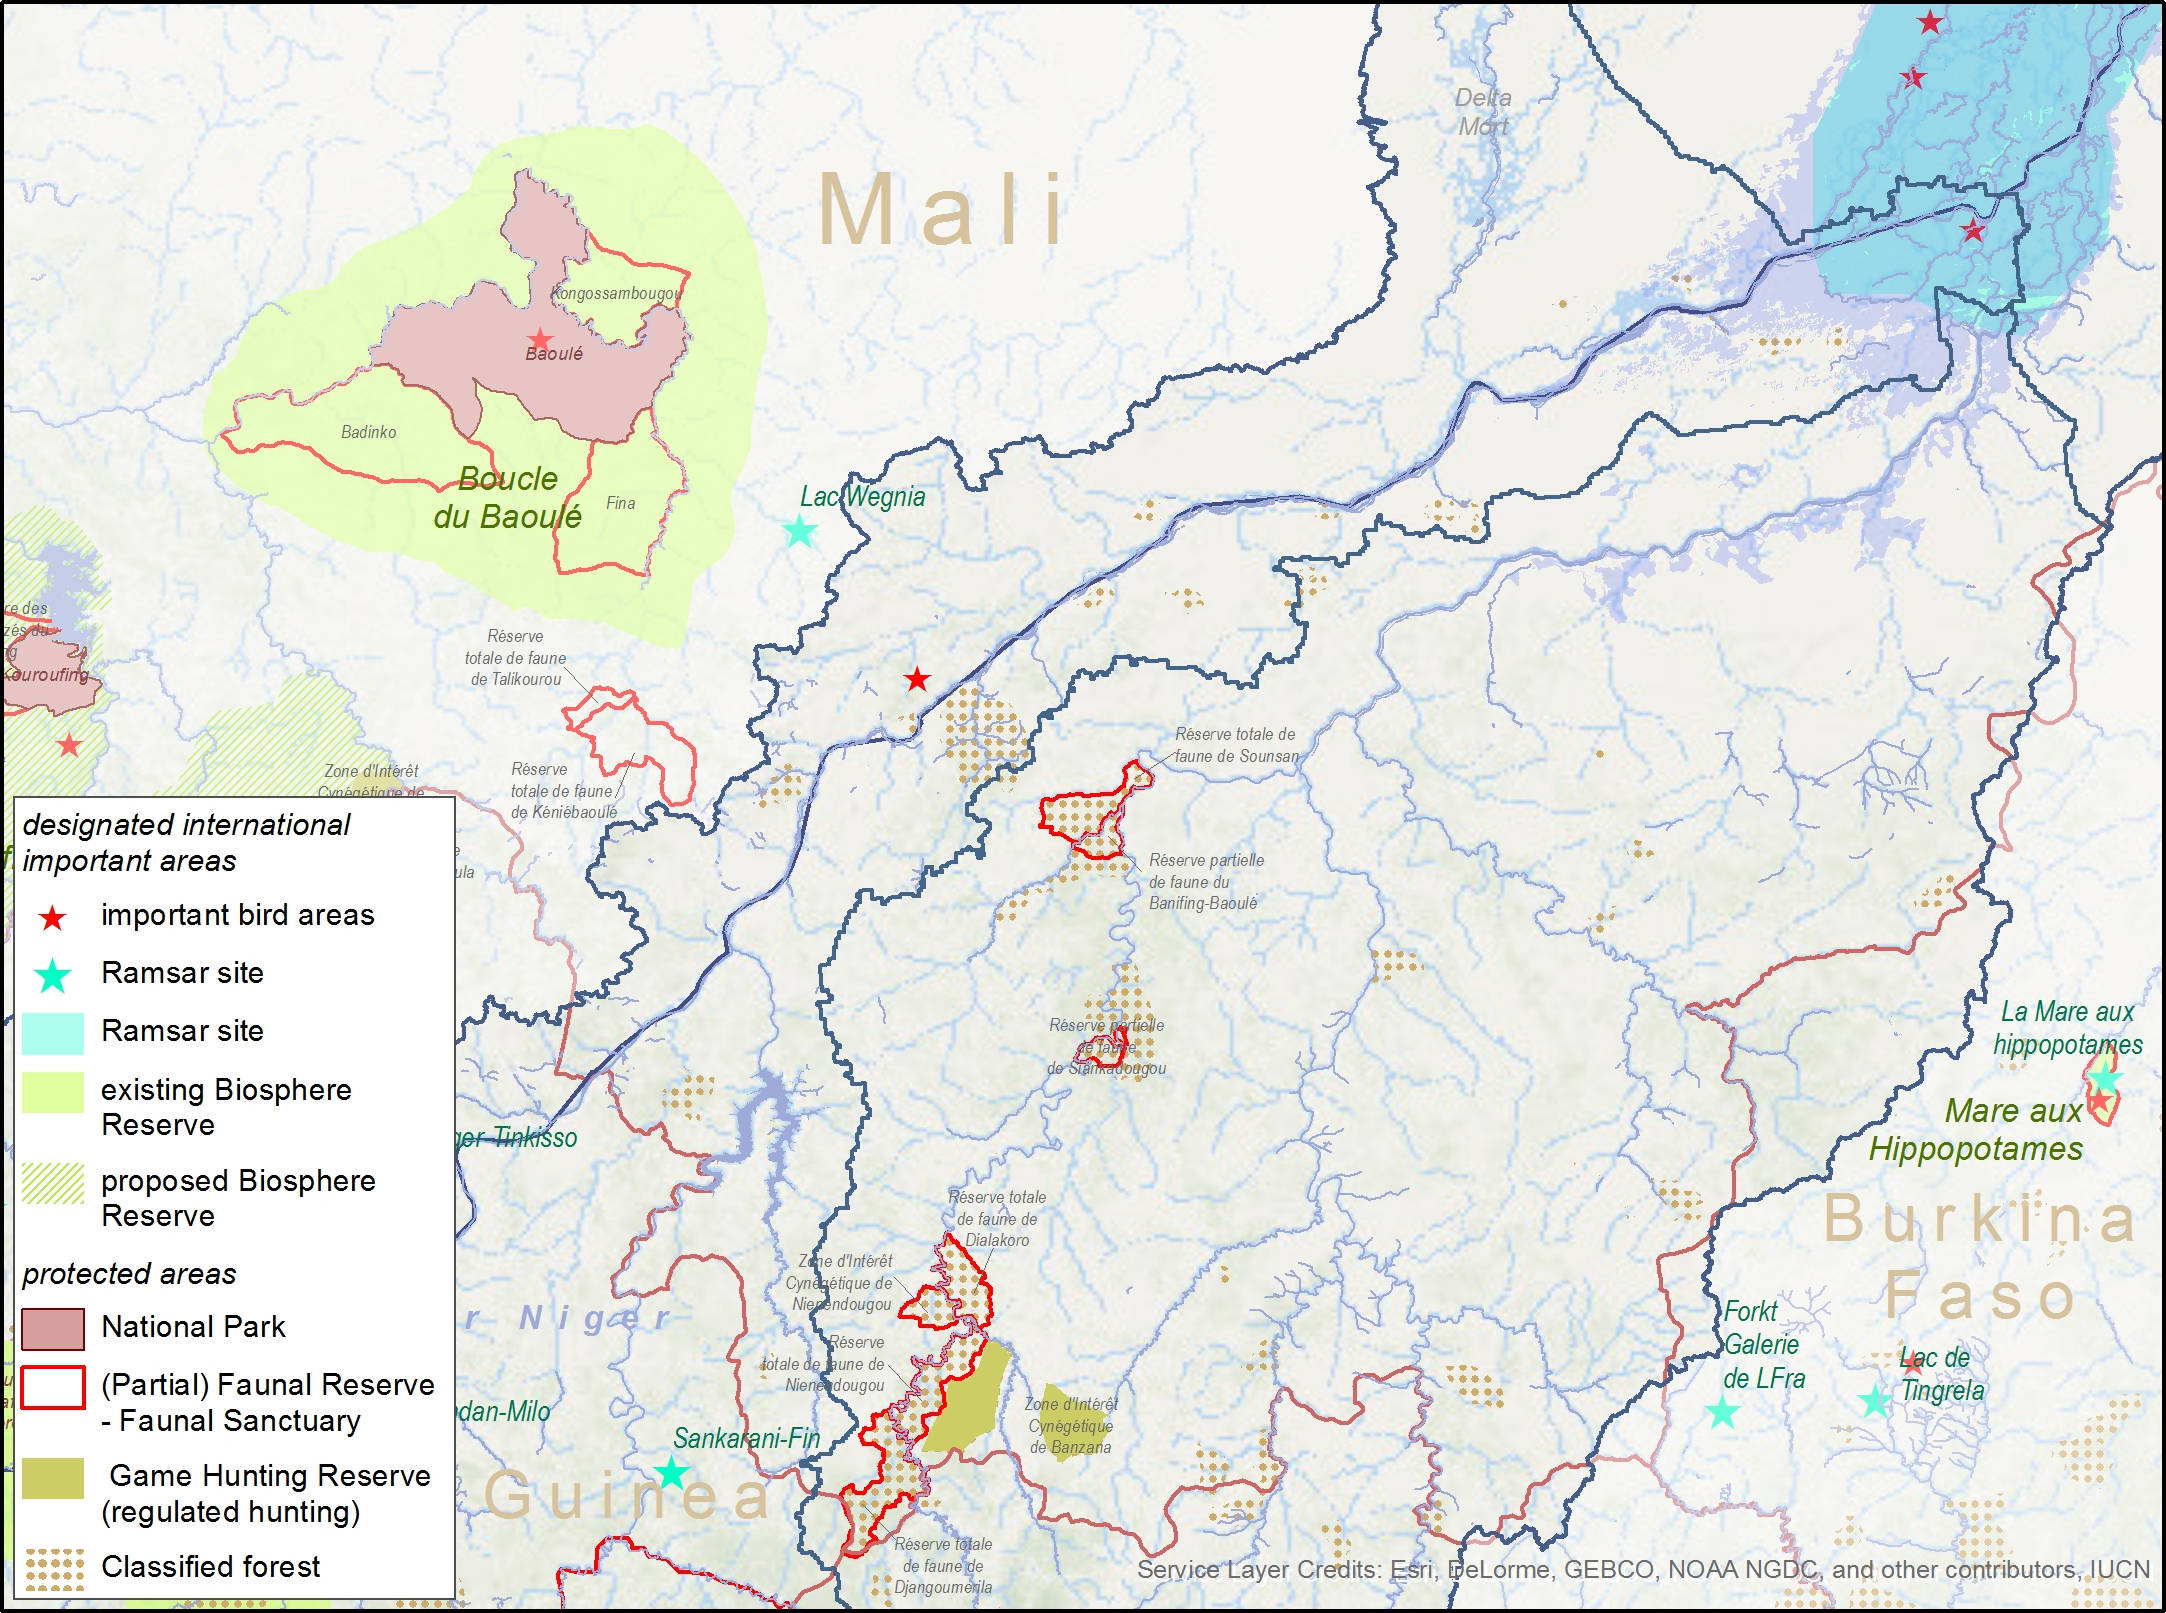 2541_107a_protected areas Mali South_web.jpg